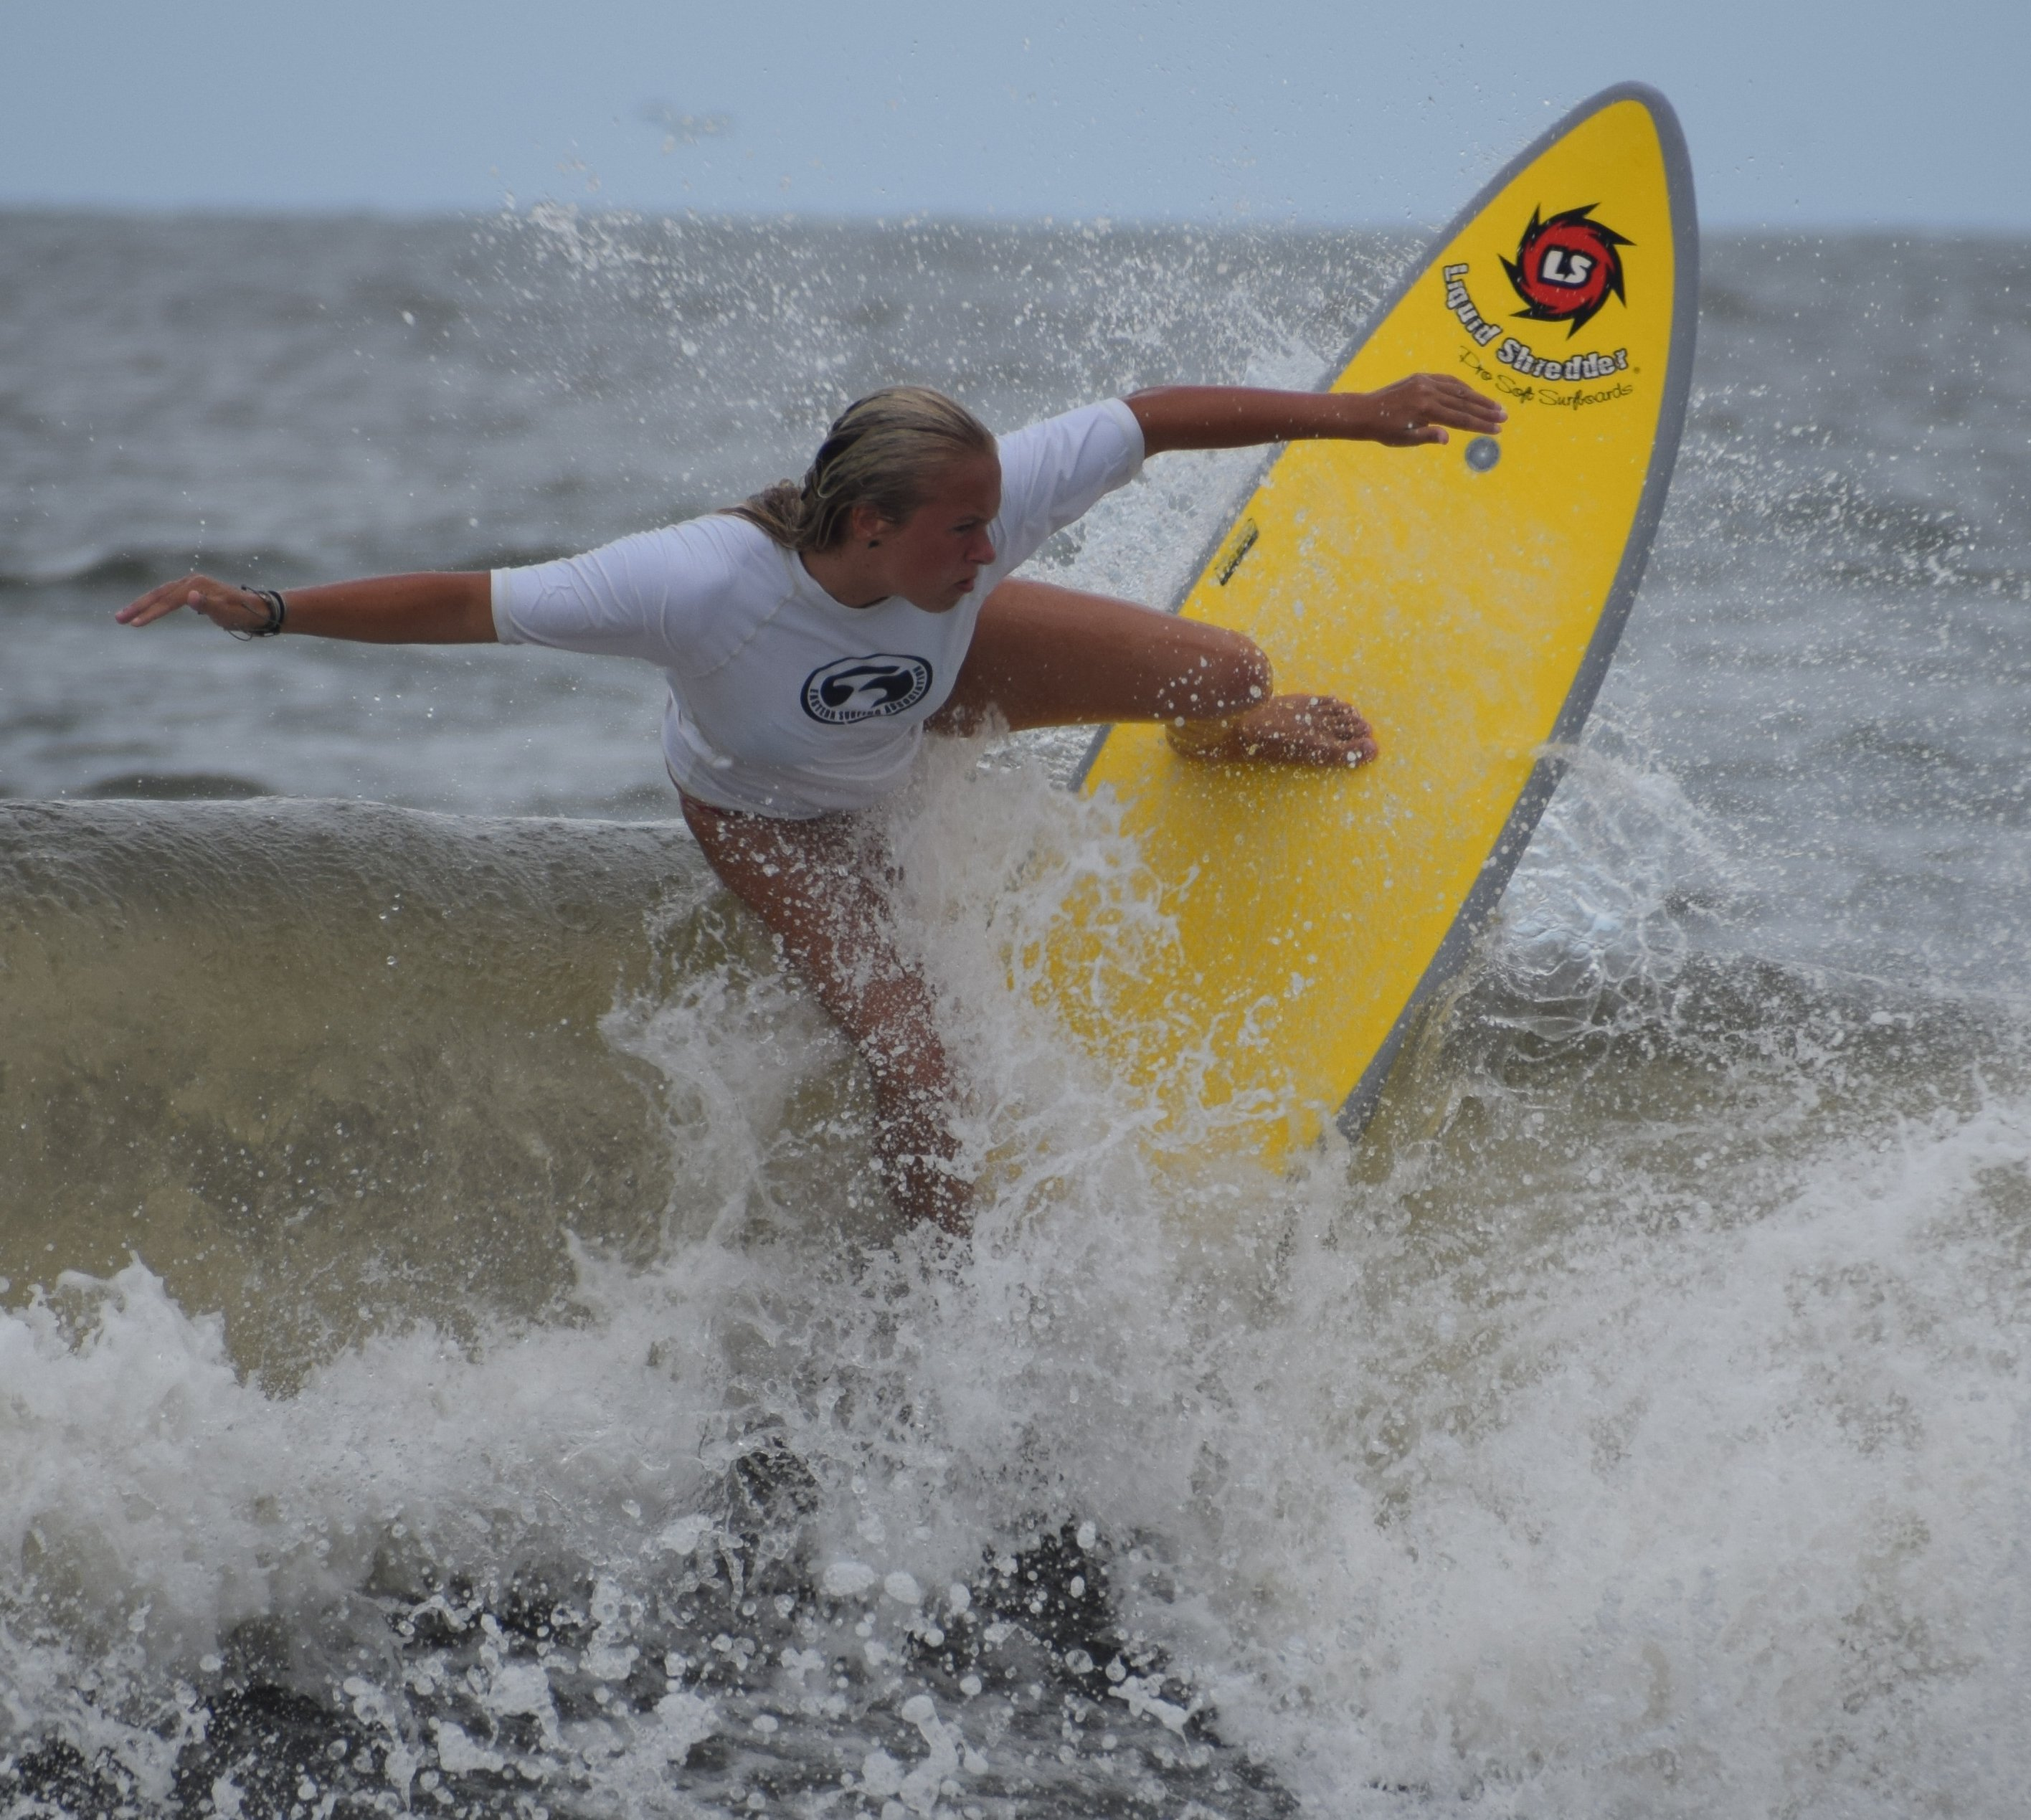 Grace Muckebfuss on Element Series Soft Surfboards